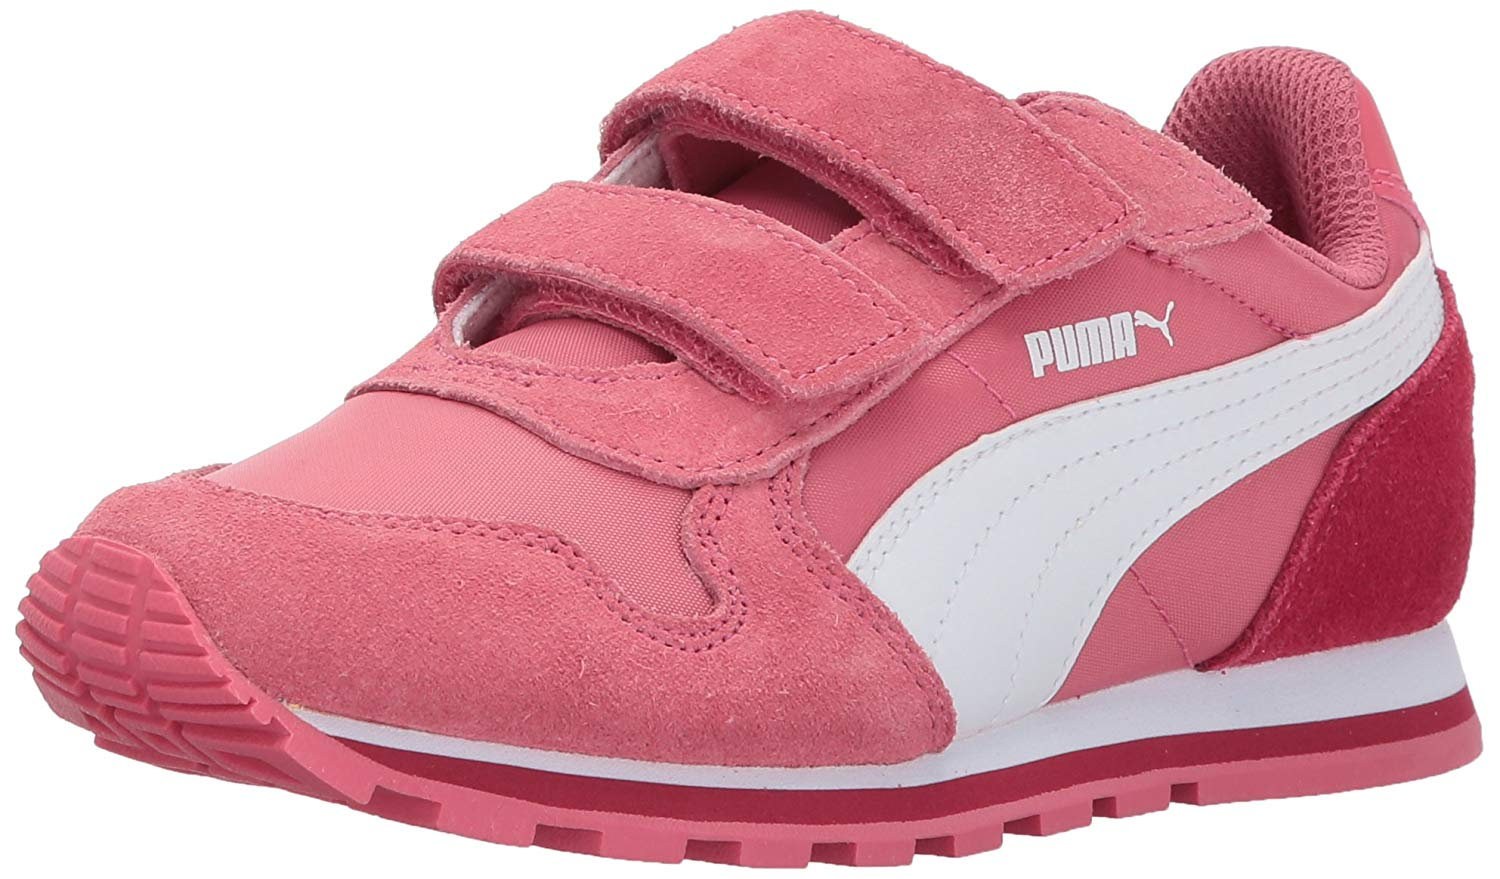 292da8bc63 Buy PUMA ST Runner NL V Kids Sneaker (Infant/Toddler/Little Kid) in ...